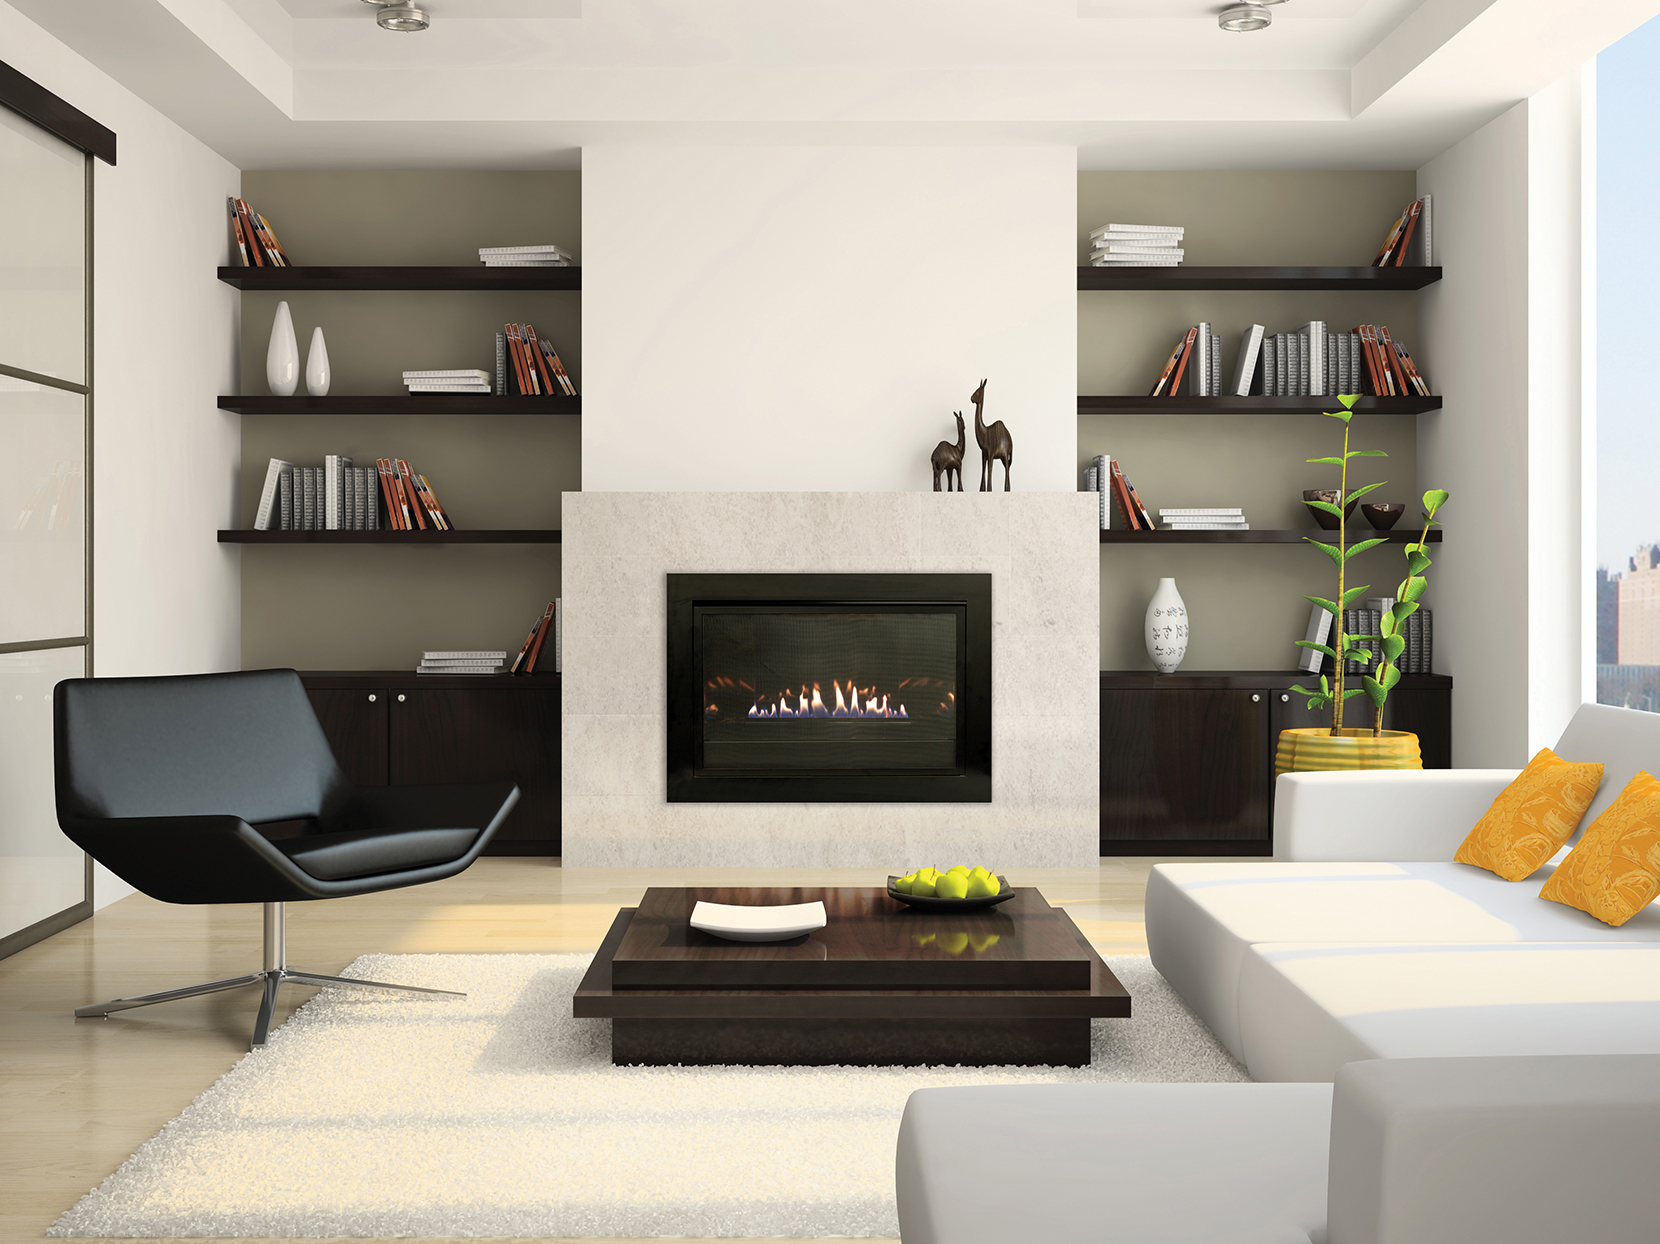 Living-room with fireplace 3D rendering